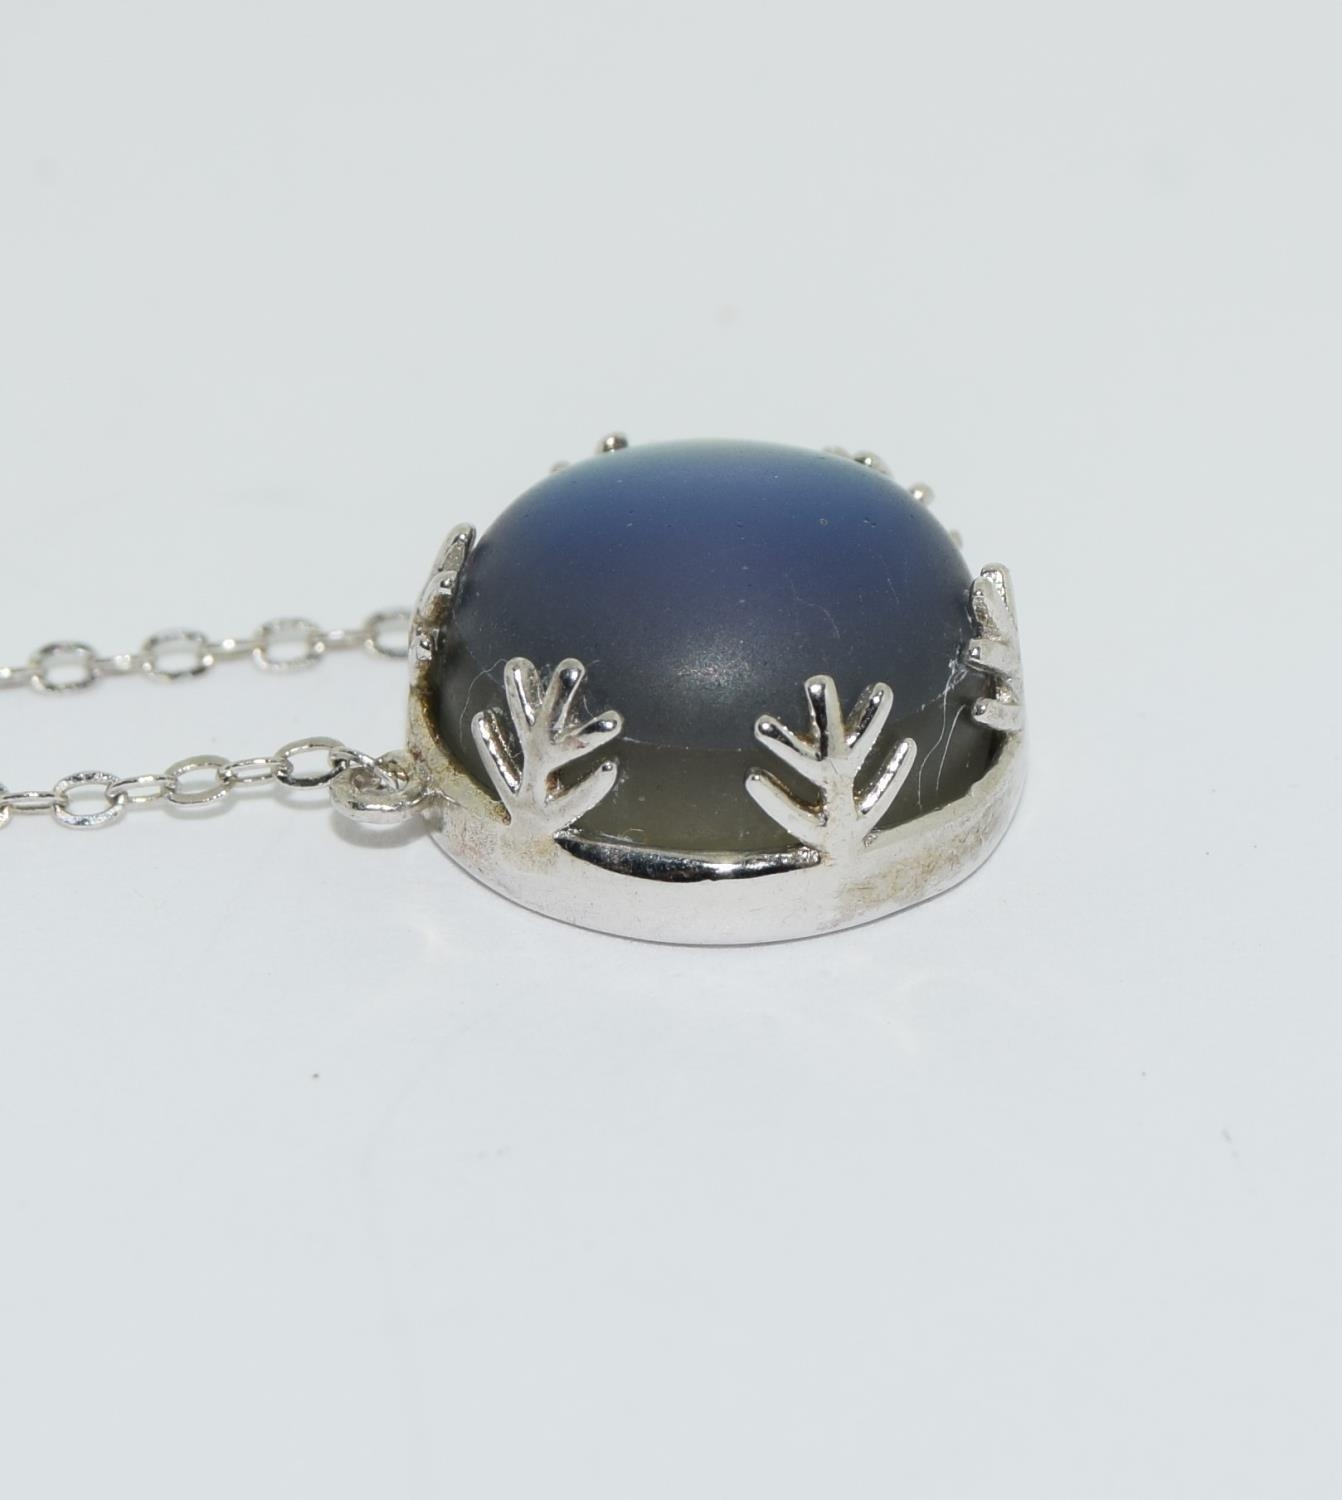 Colourful Mystic Moonstone 925 silver pendant. - Image 2 of 3